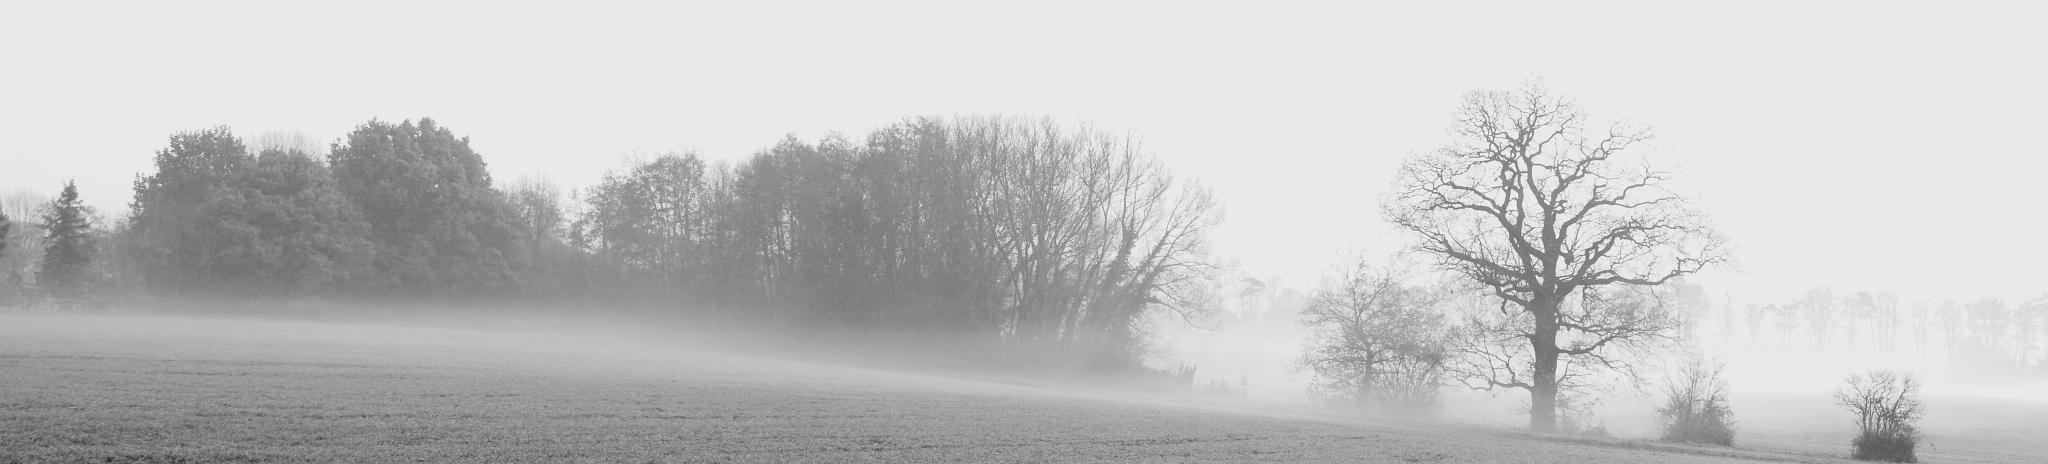 Early morning mist. by WhiteArtPhotography